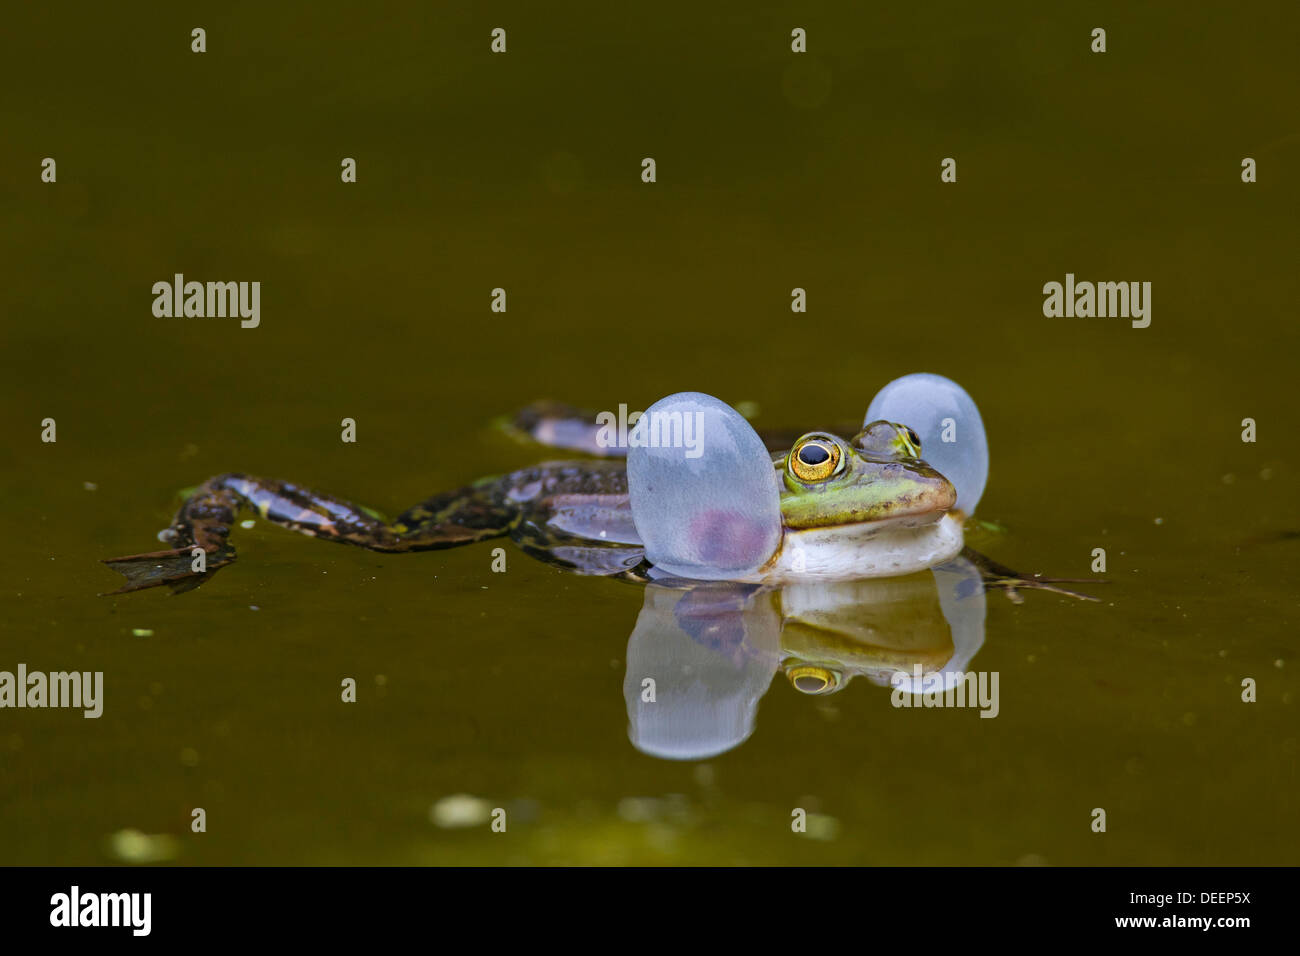 European edible frog (Pelophylax kl. esculentus / Rana kl. esculenta) croaking by inflating vocal sacs in water of pond - Stock Image